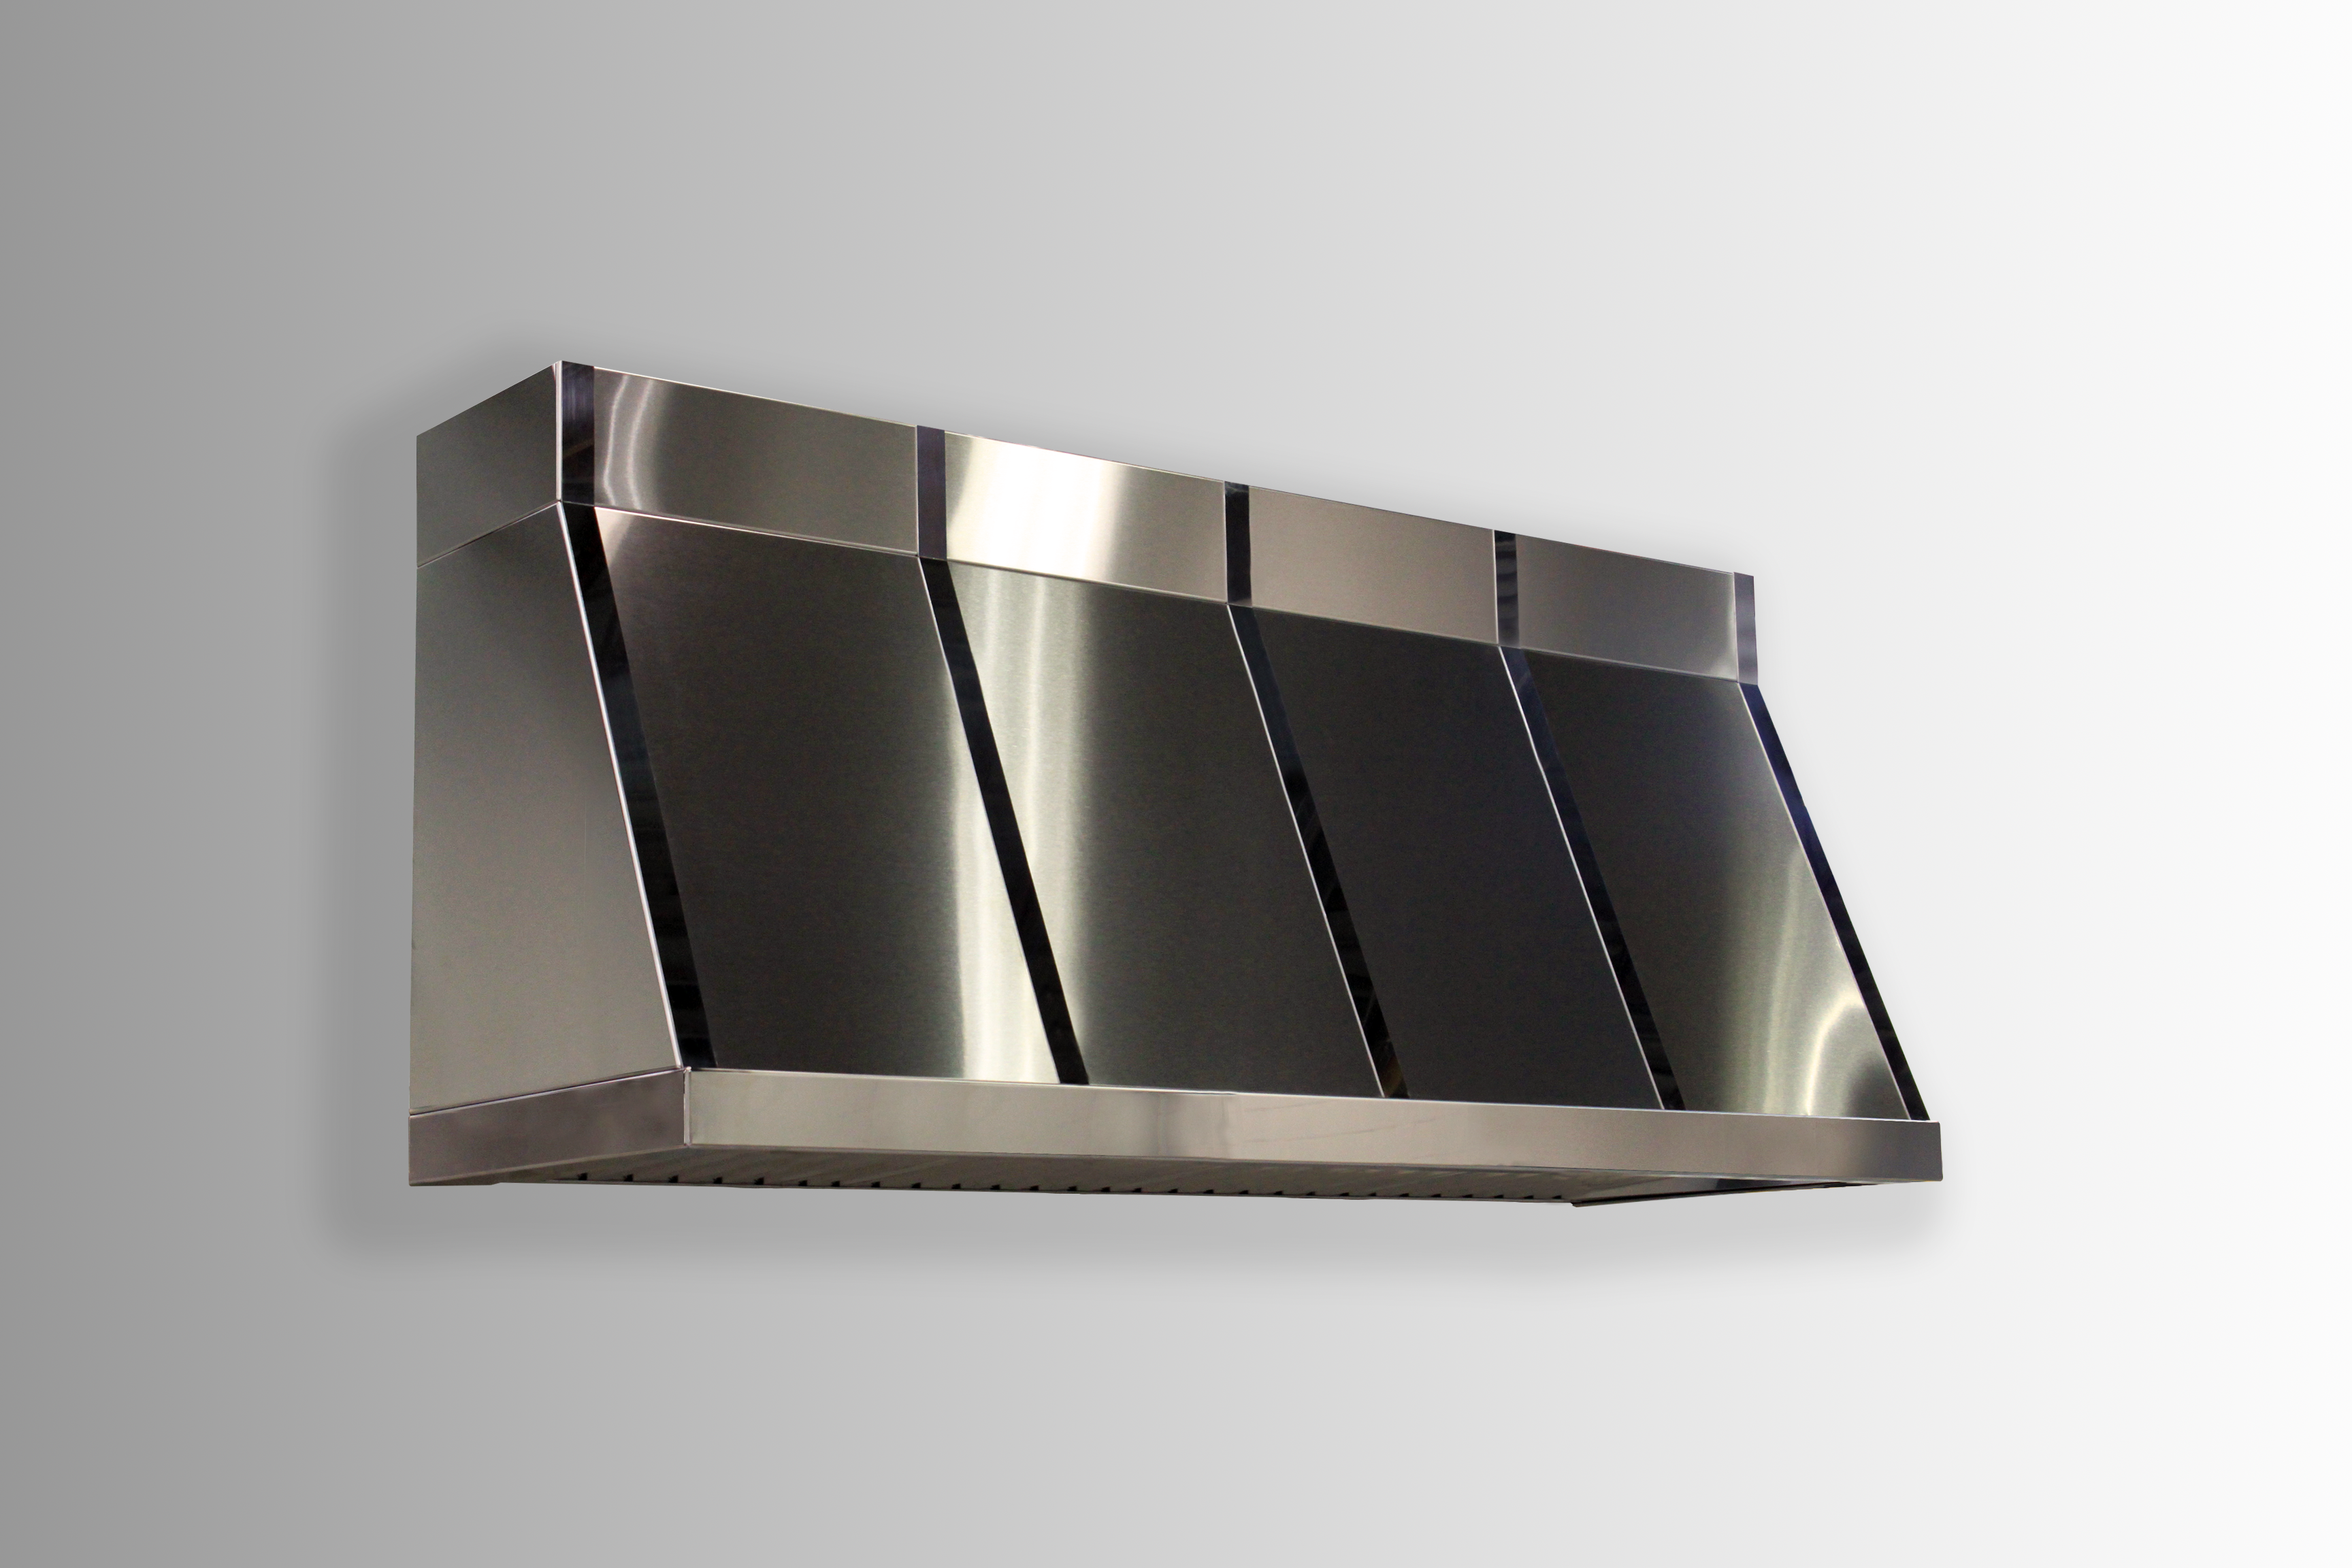 Wall mounted Summit in stainless steel non-directional with polished stainless steel banding.